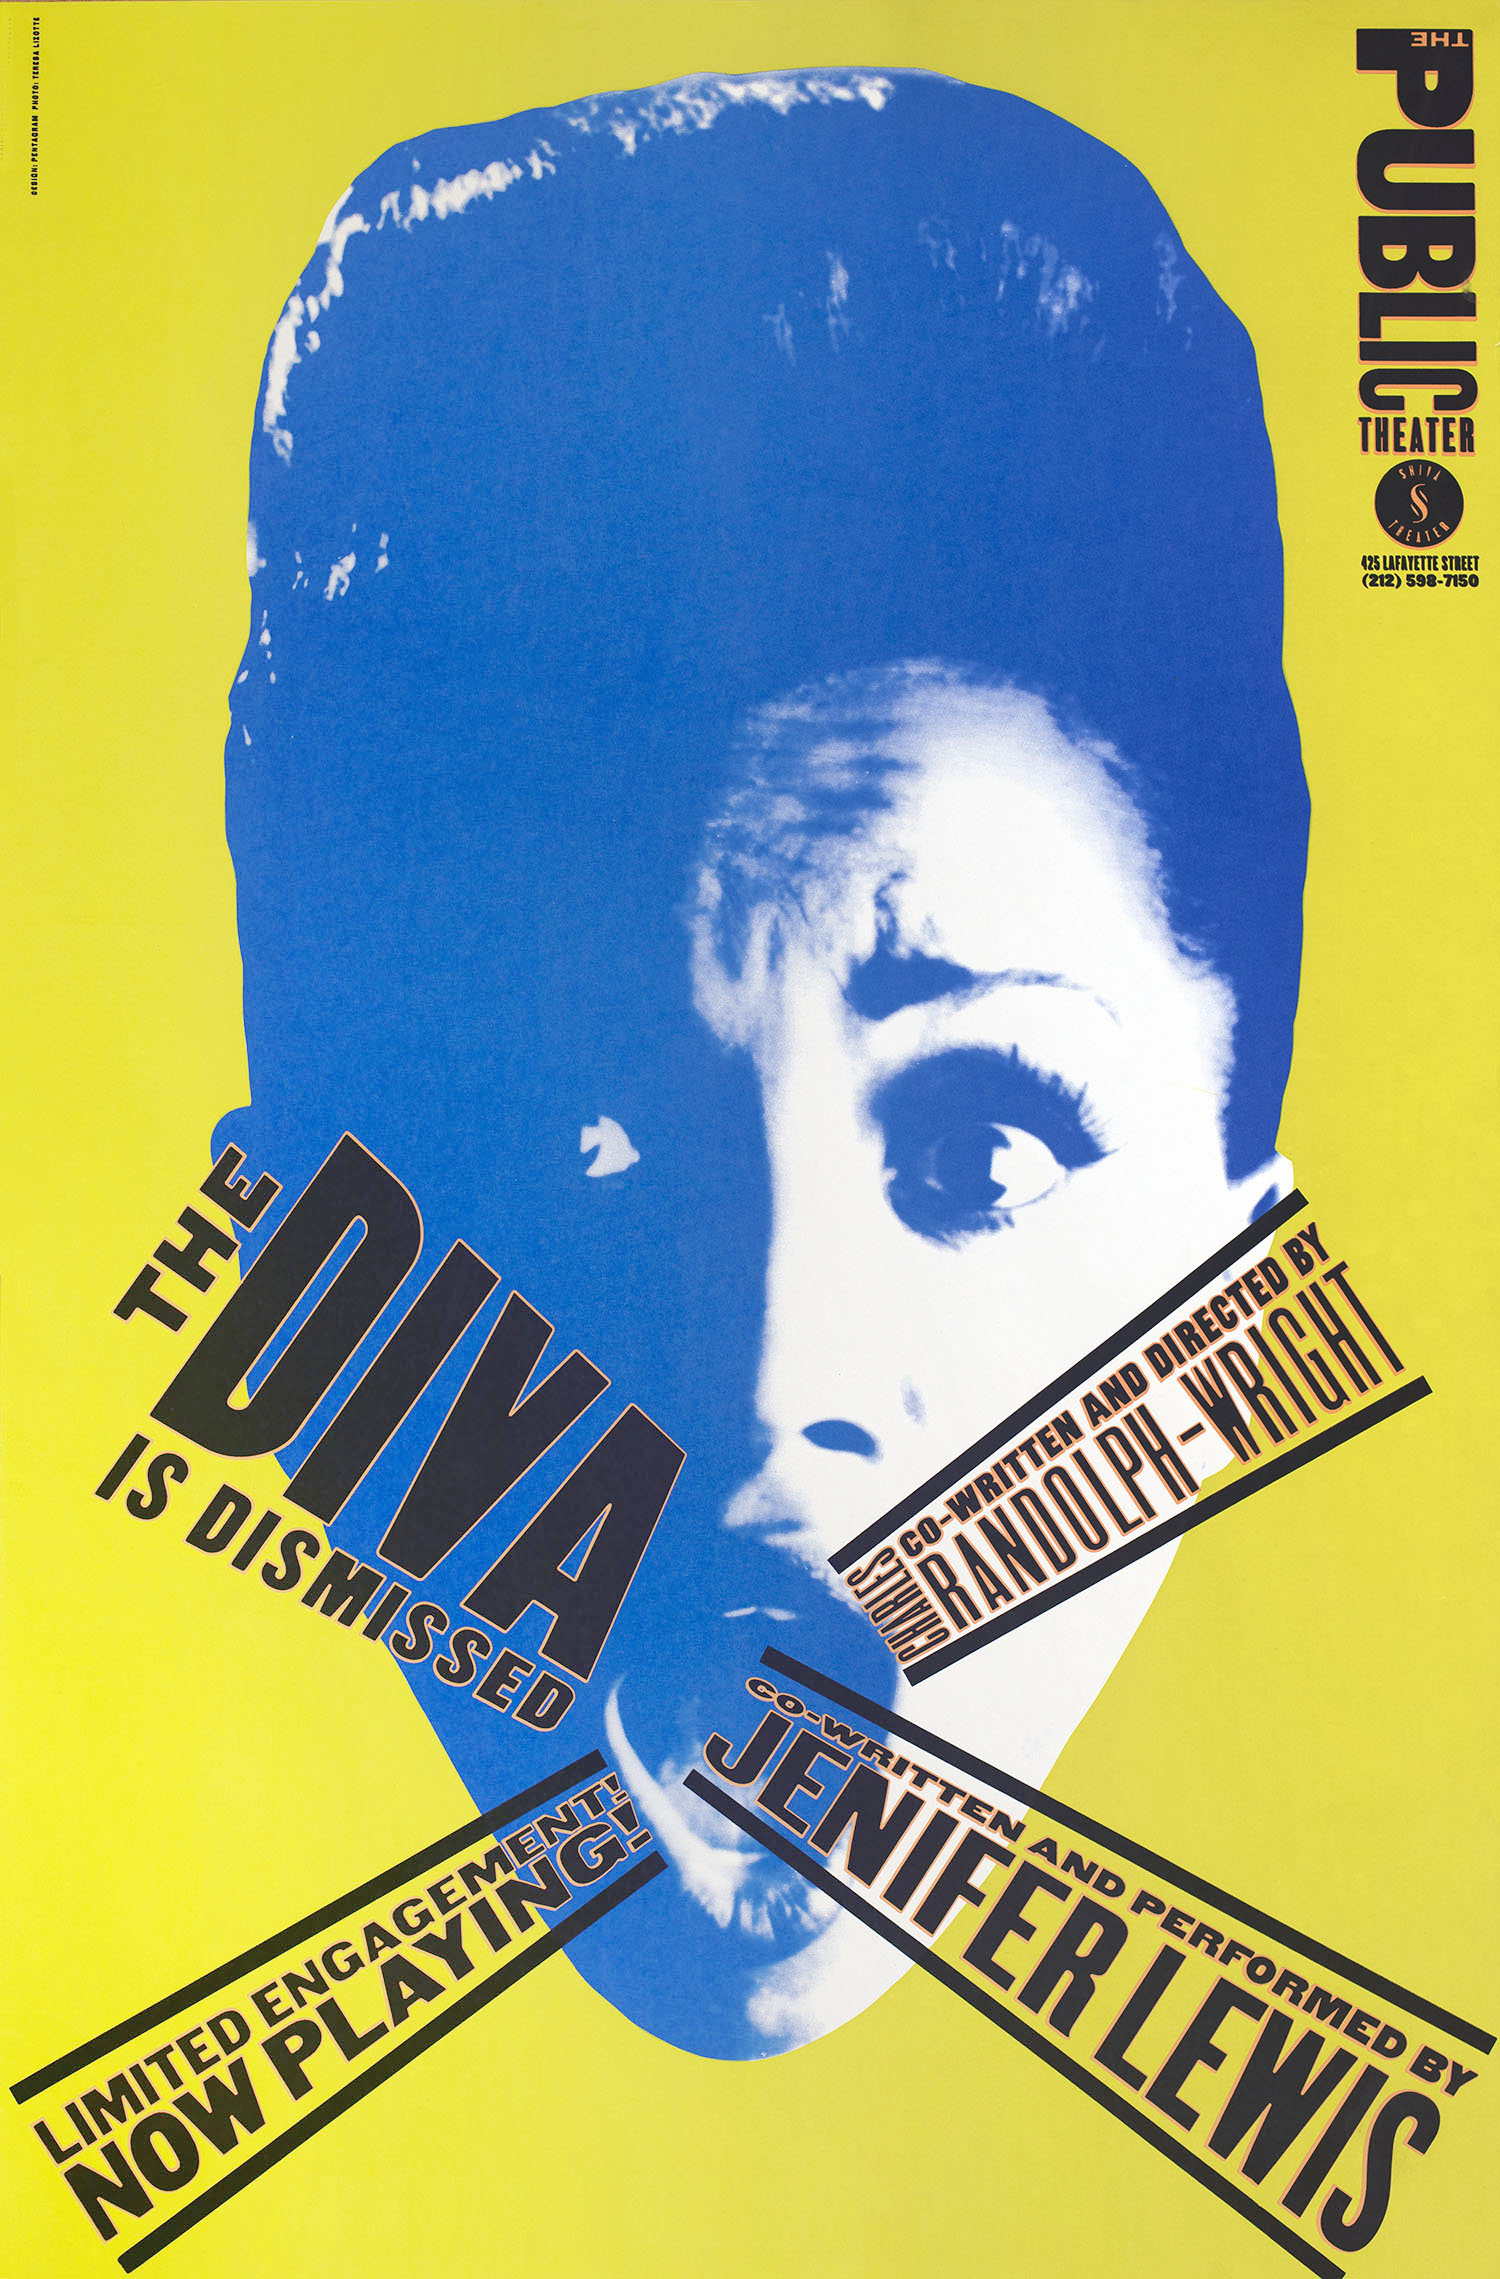 Poster with a blue-and-white photograph of a woman with a beehive hairdo, eyes and mouth opened wide. The supplementary text is arranged as to emanate from her mouth.